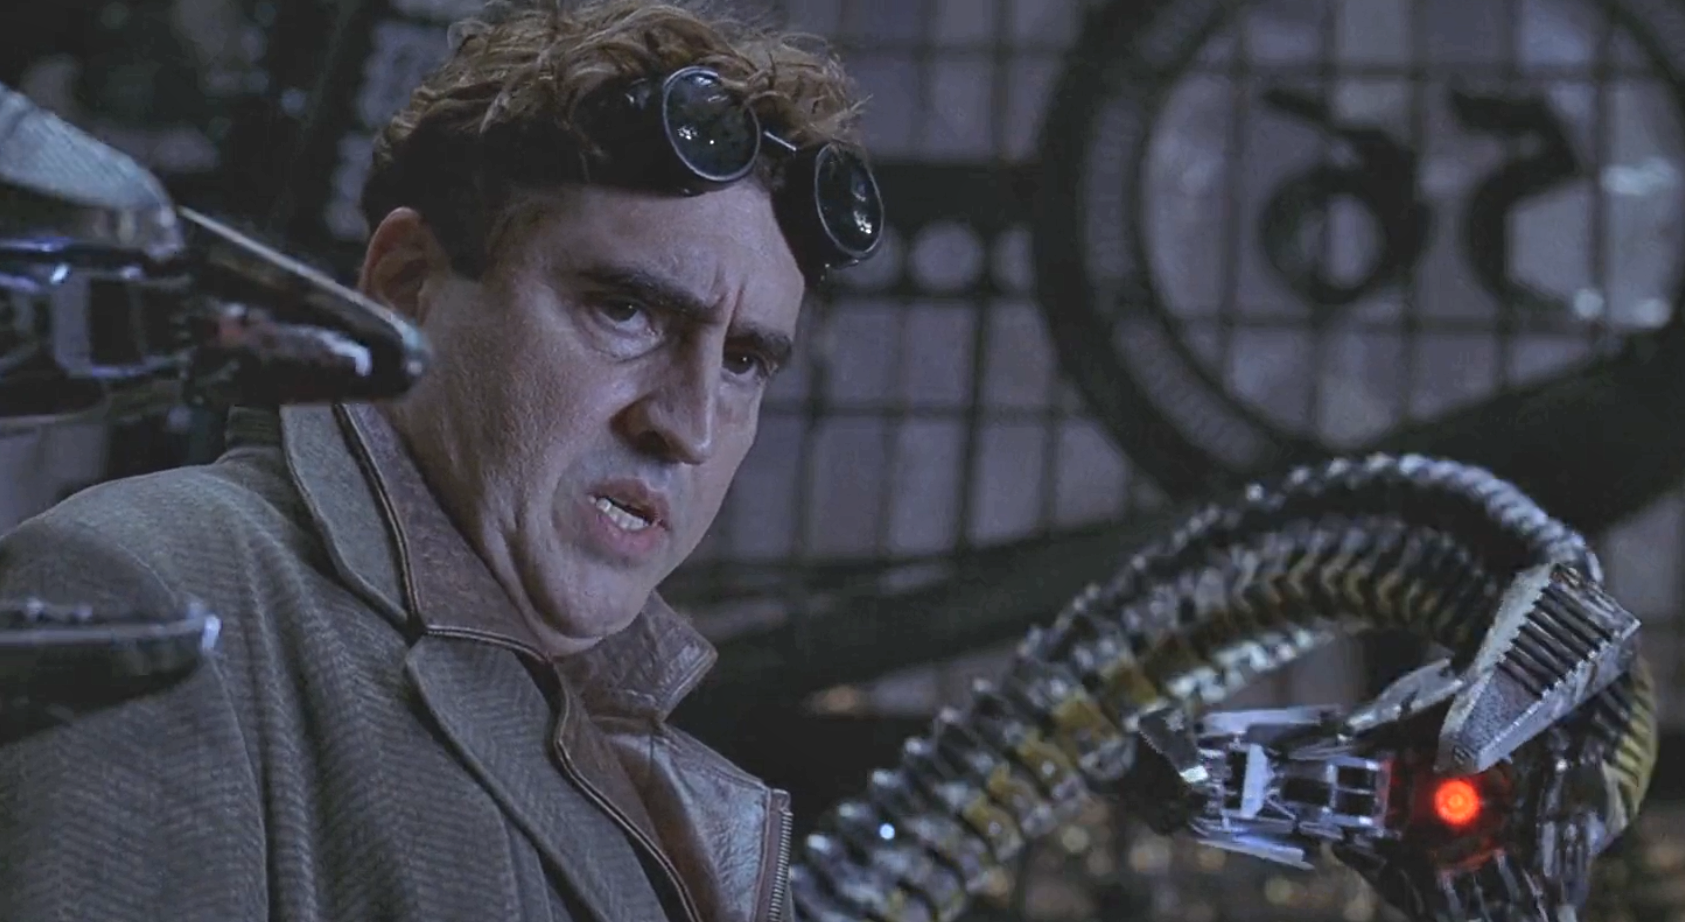 marvel in film n1767 2004 alfred molina as dr octopus